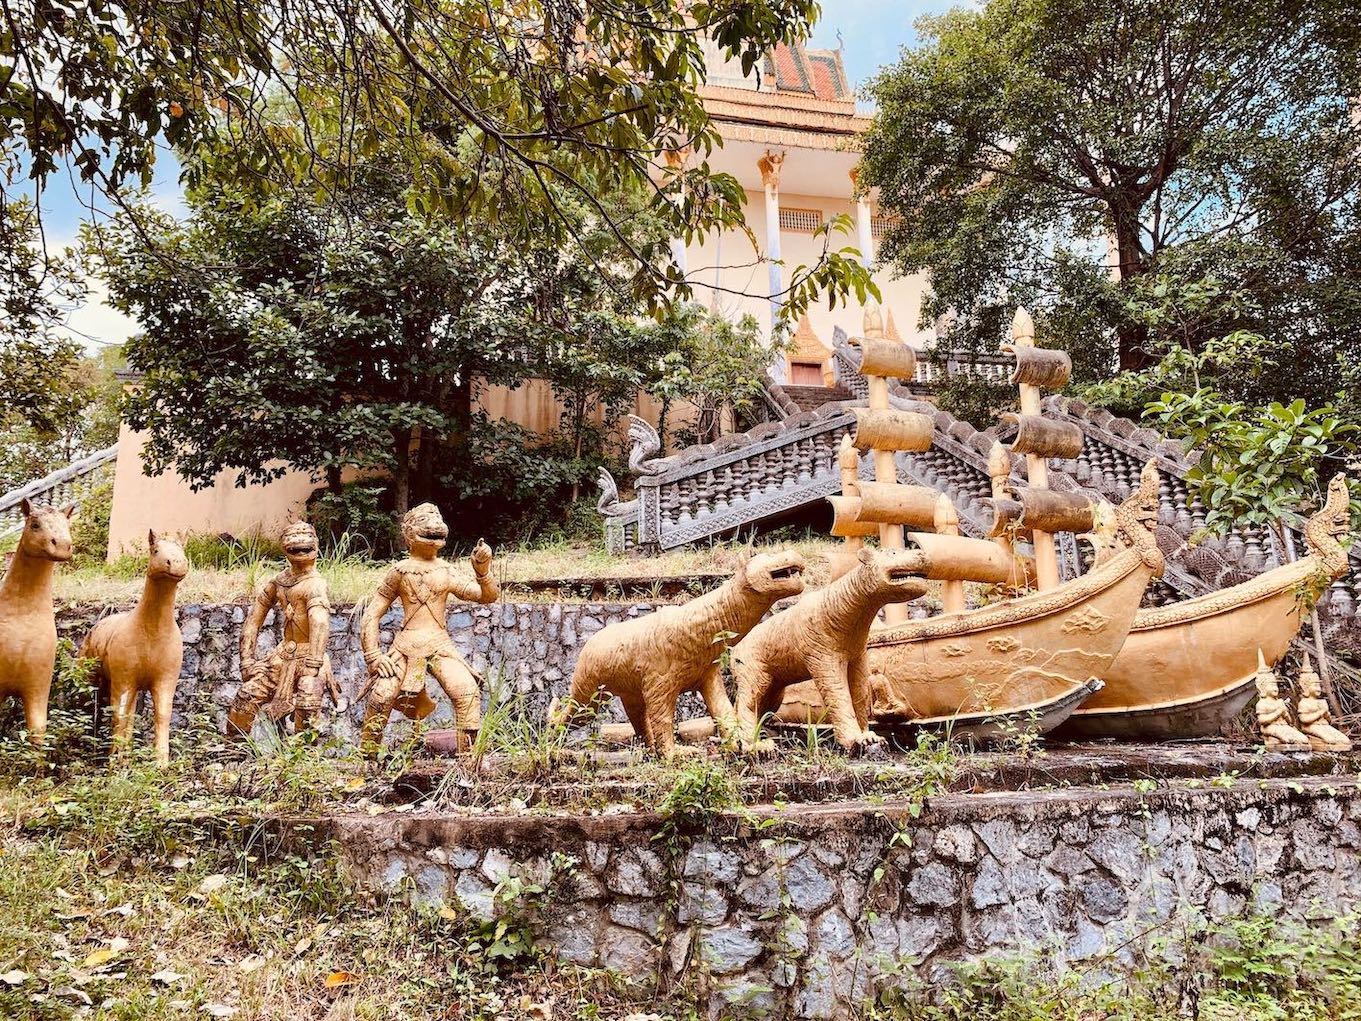 Golden sculptures Samathi Pagoda.